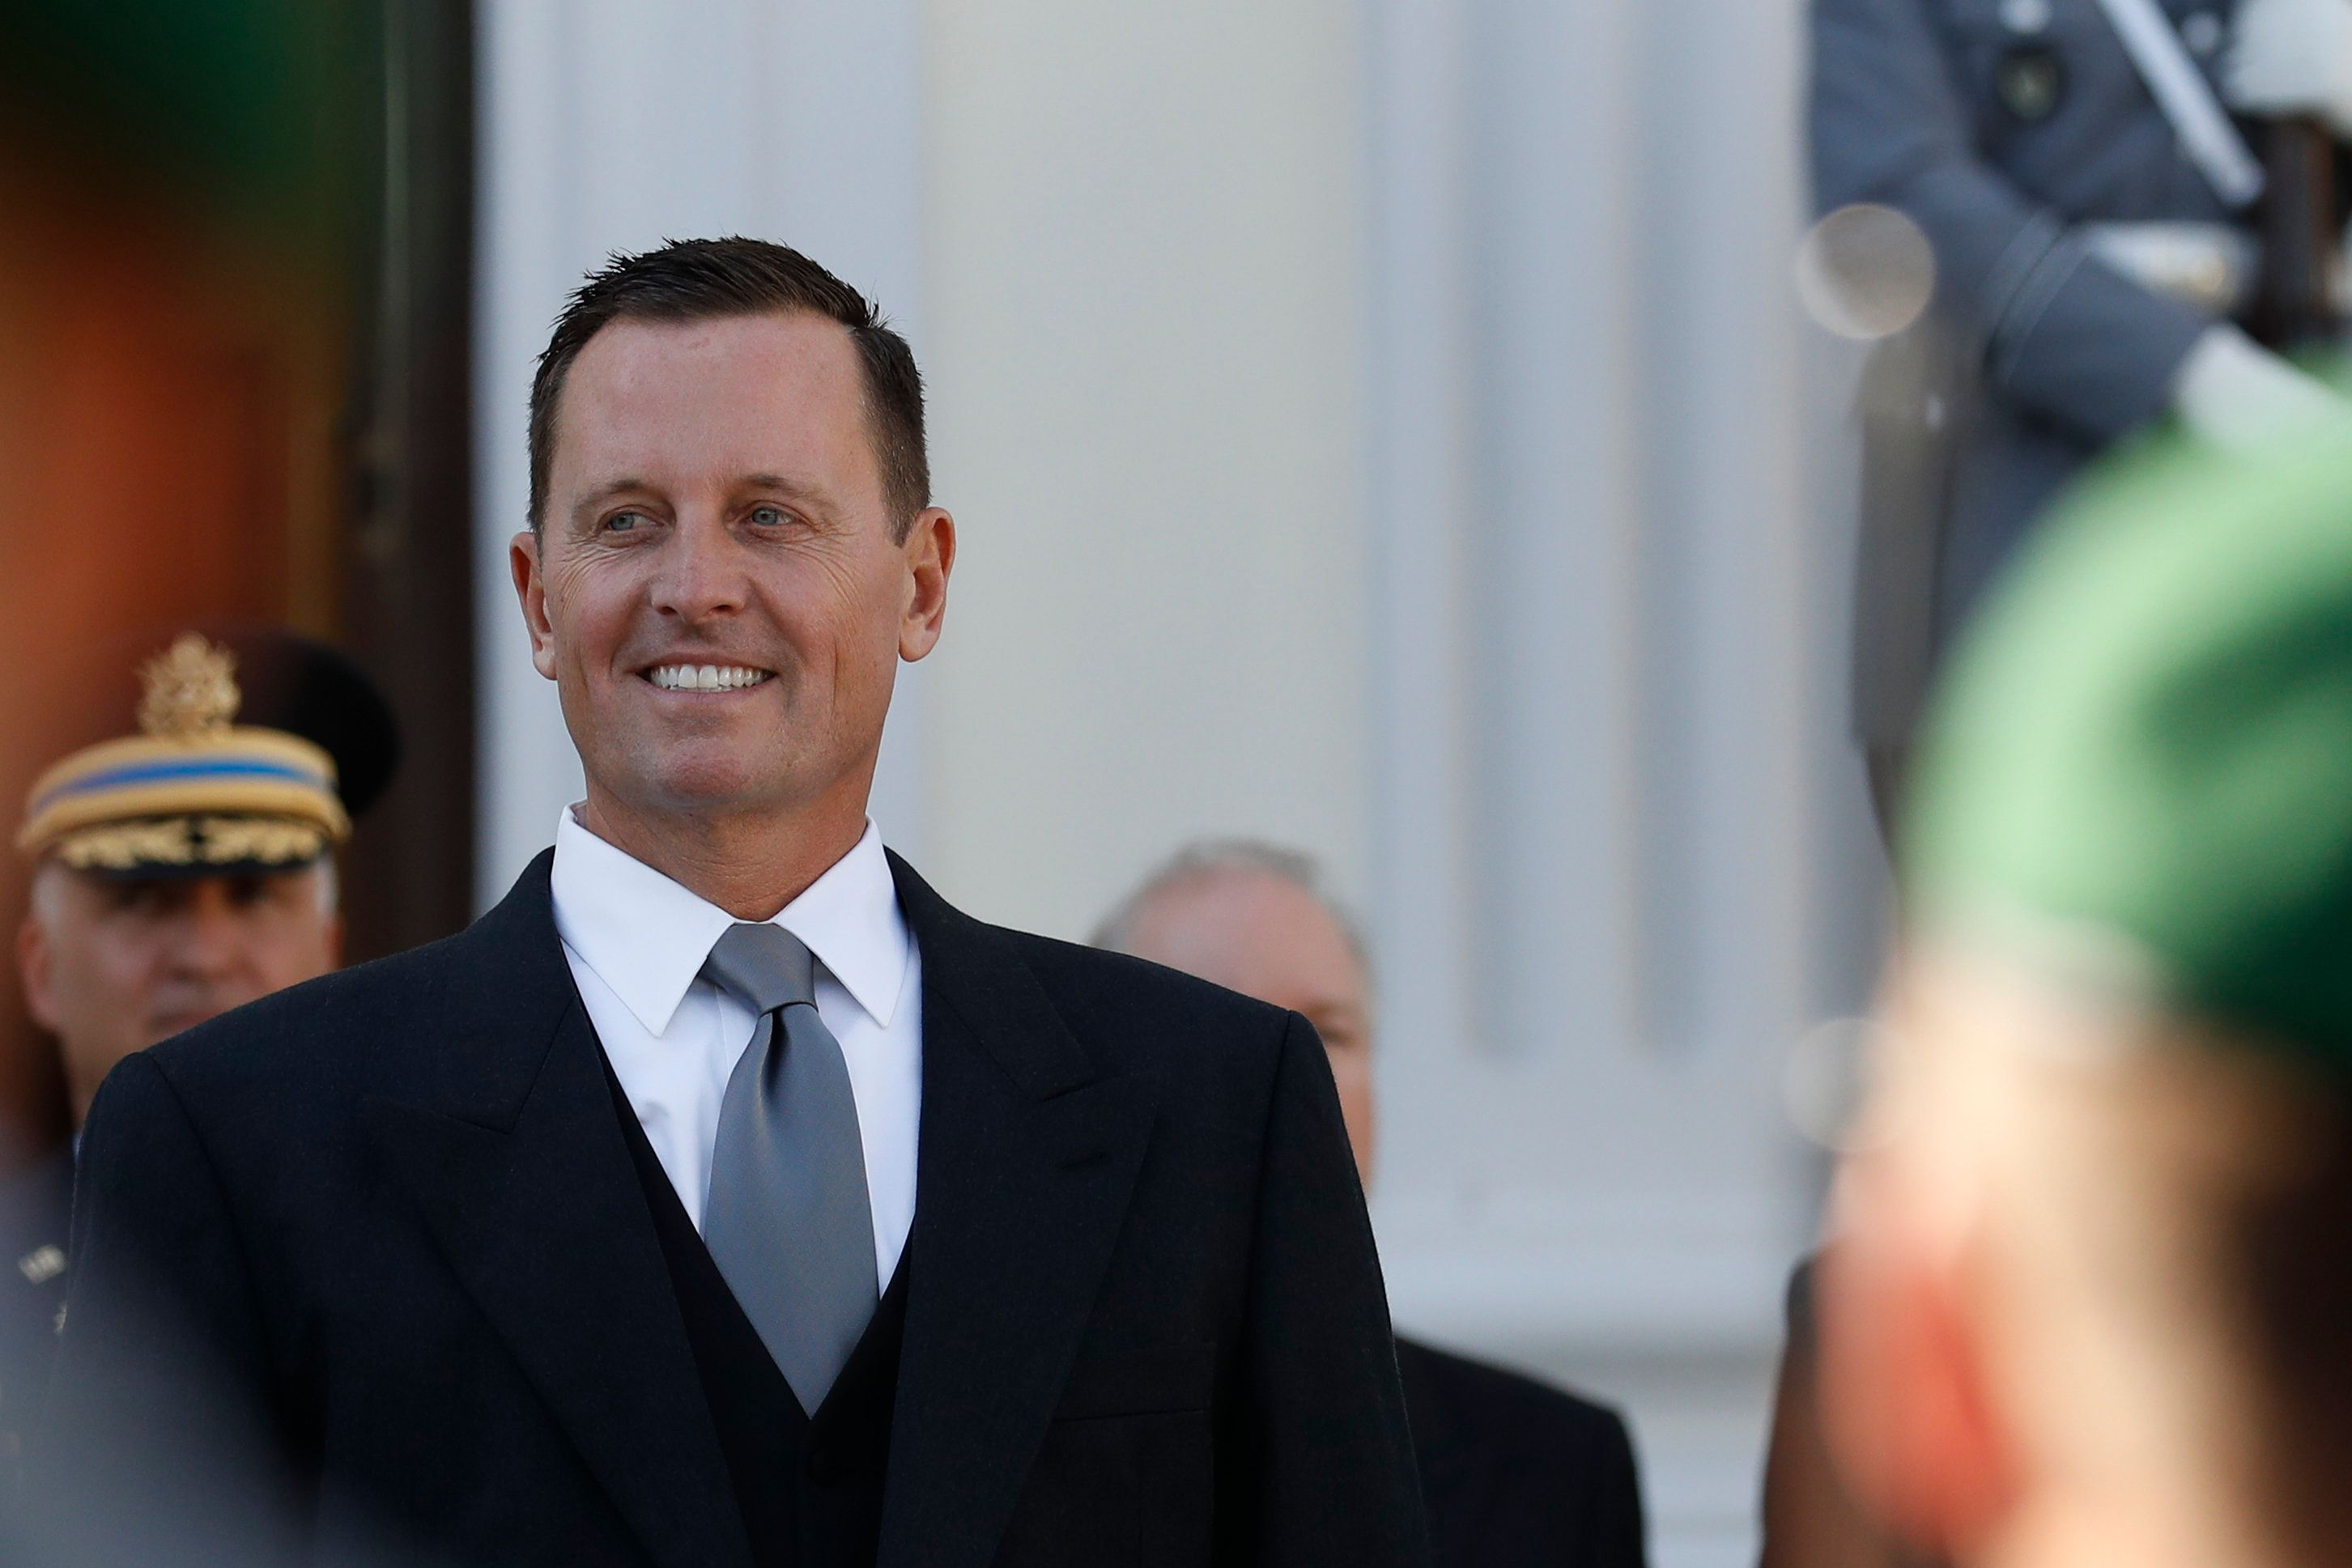 Newly accredited US Ambassador Richard Allen Grenell stands in front of a military honor guard during an accreditation ceremony for new Ambassadors in Berlin, Germany, on May 08, 2018. (Photo by Odd ANDERSEN / AFP)        (Photo credit should read ODD ANDERSEN/AFP/Getty Images)